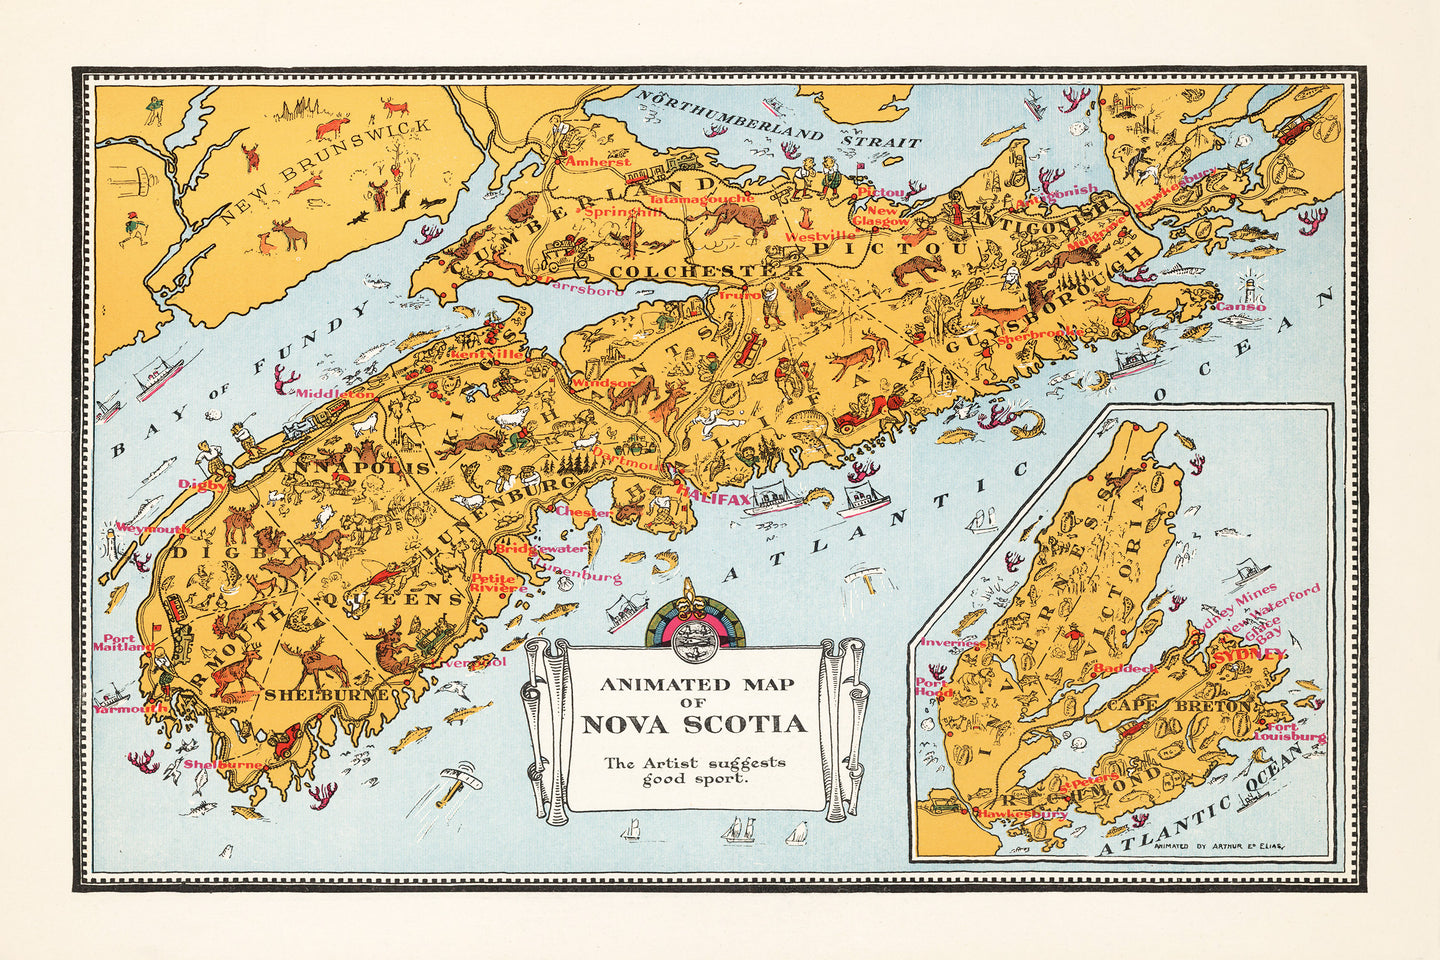 Animated Map of Nova Scotia